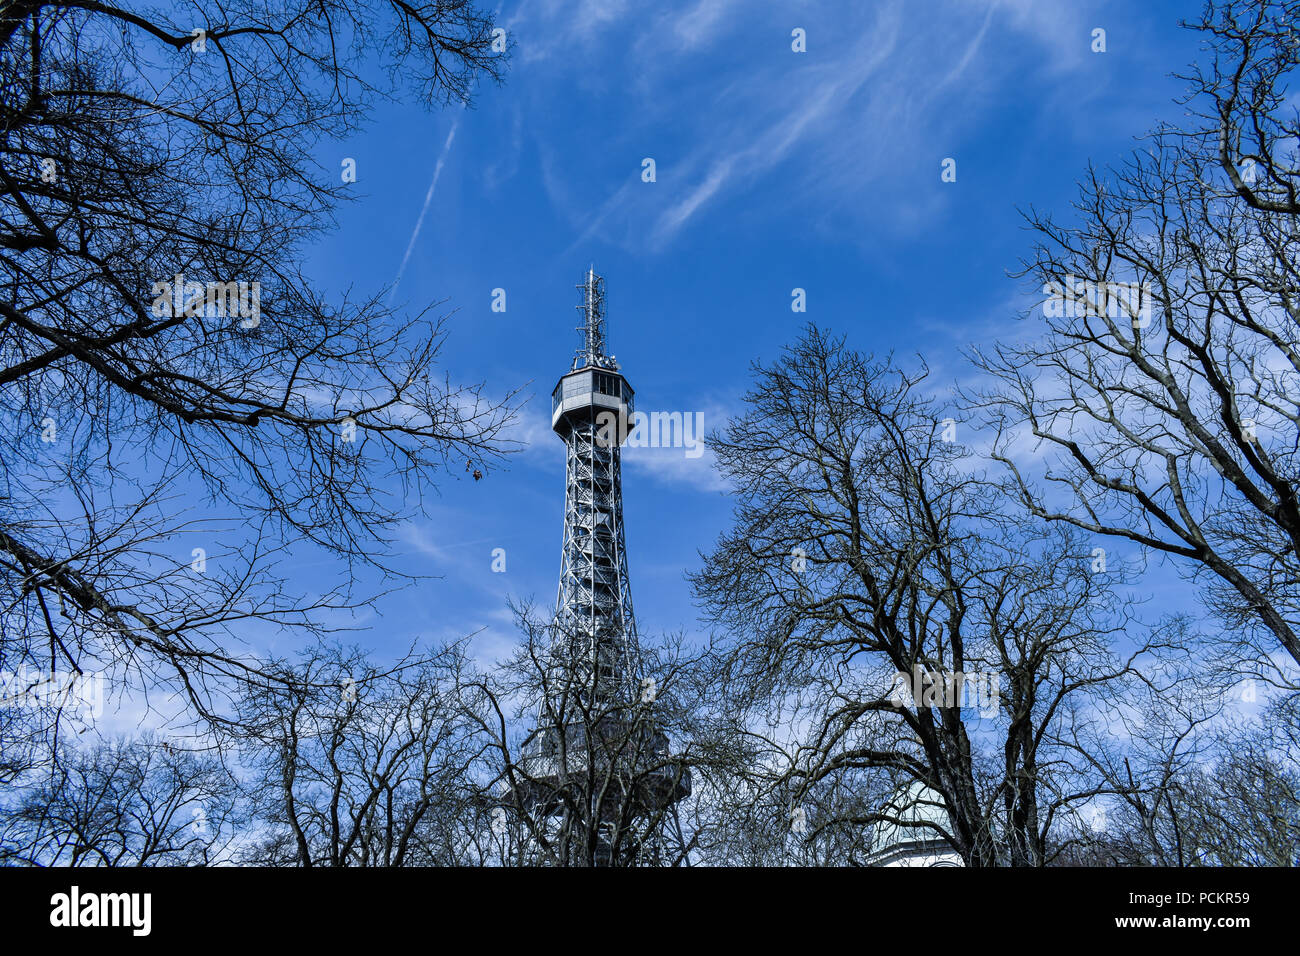 The Petřín Lookout Tower is a 63.5-metre-tall steel-framework tower in Prague, which strongly resembles the Eiffel Tower. - Stock Image